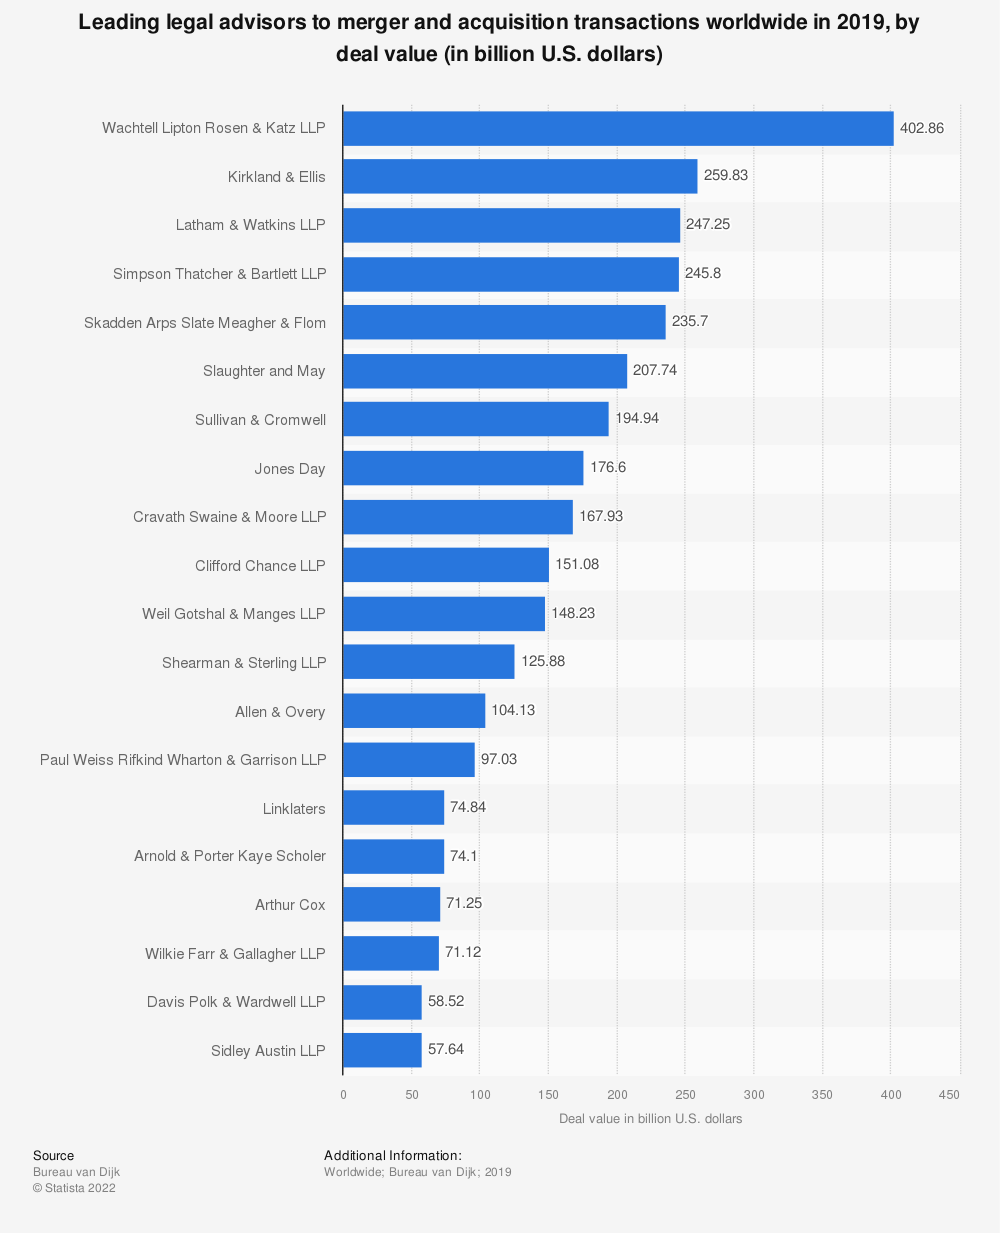 Statistic: Leading legal advisors to merger and acquisition transactions worldwide in 2019, by deal value (in billion U.S. dollars) | Statista